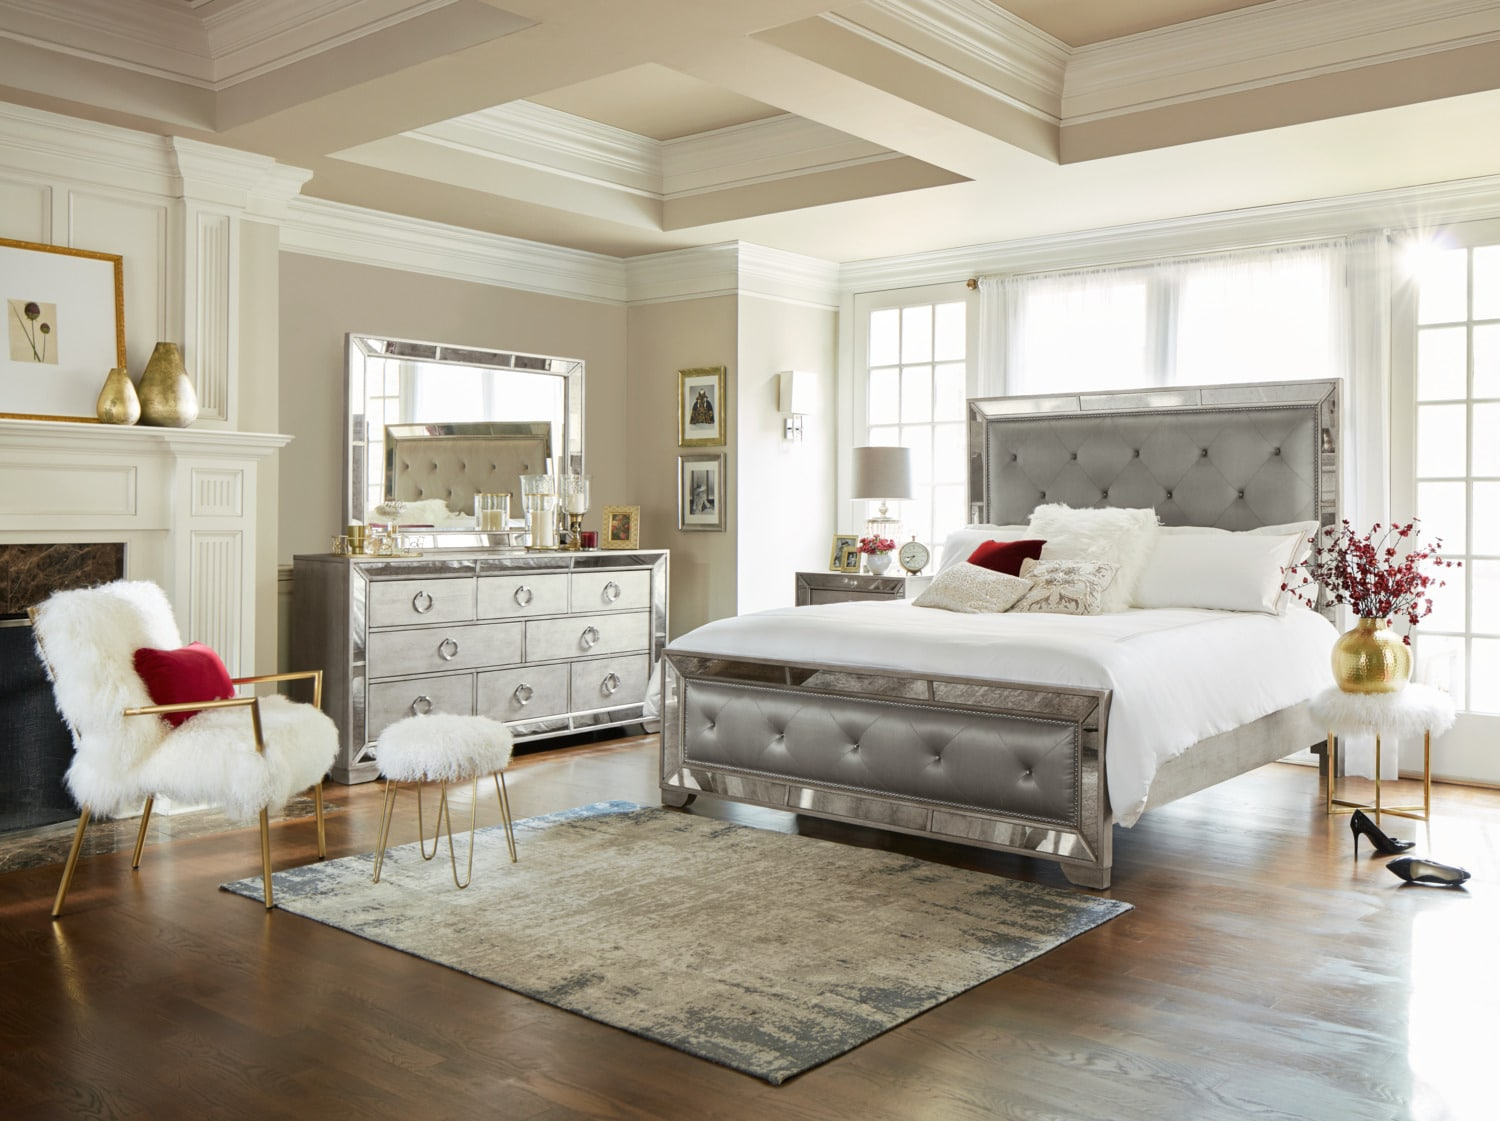 Bedroom Furniture Queen Sets angelina 6-piece queen bedroom set - metallic | american signature